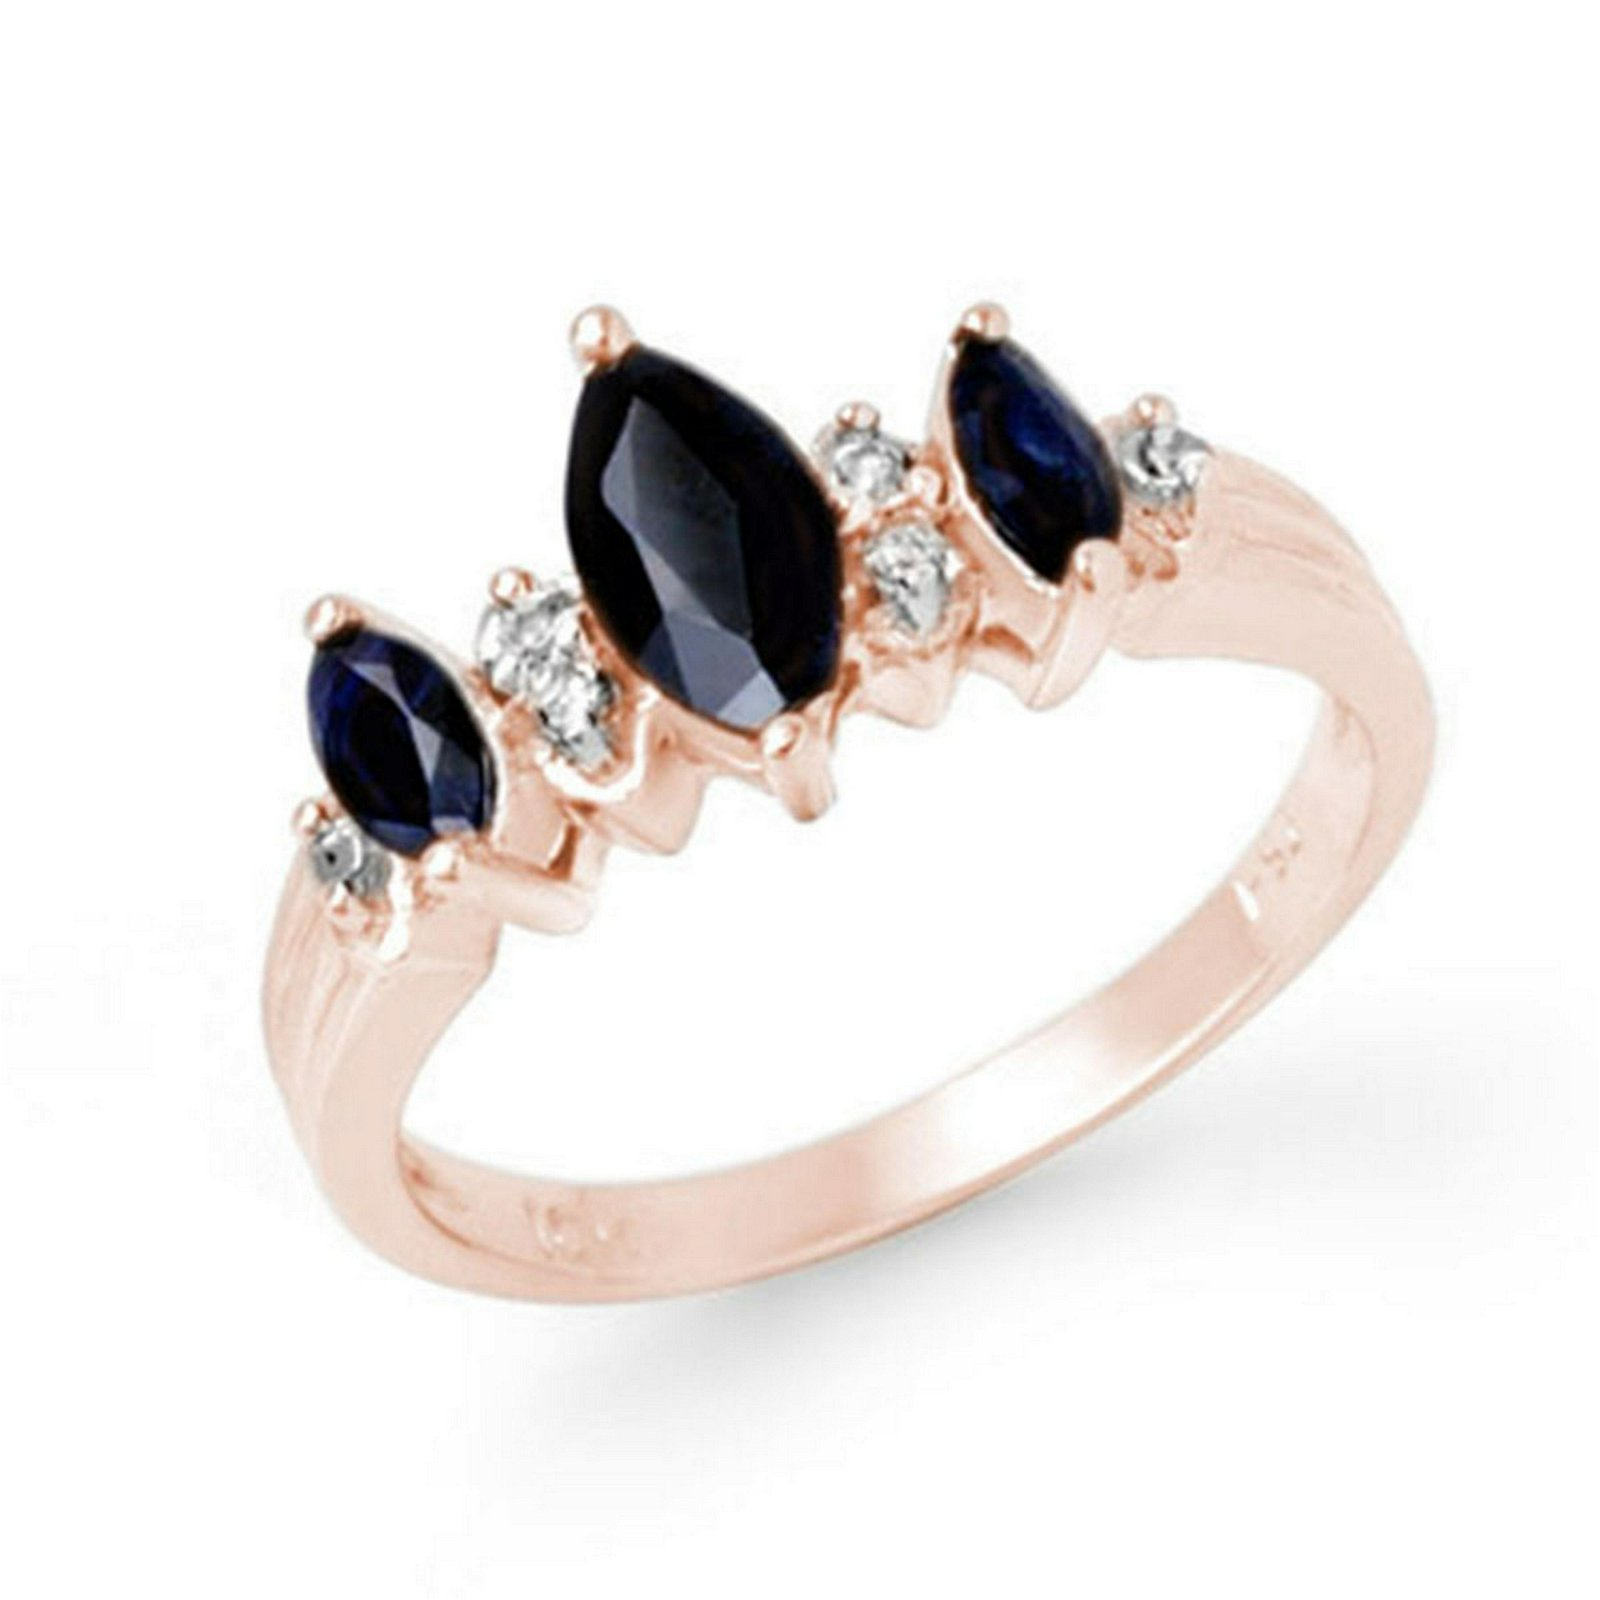 1.0 CTW Genuine Blue Sapphire & Diamond Ring 10K Rose